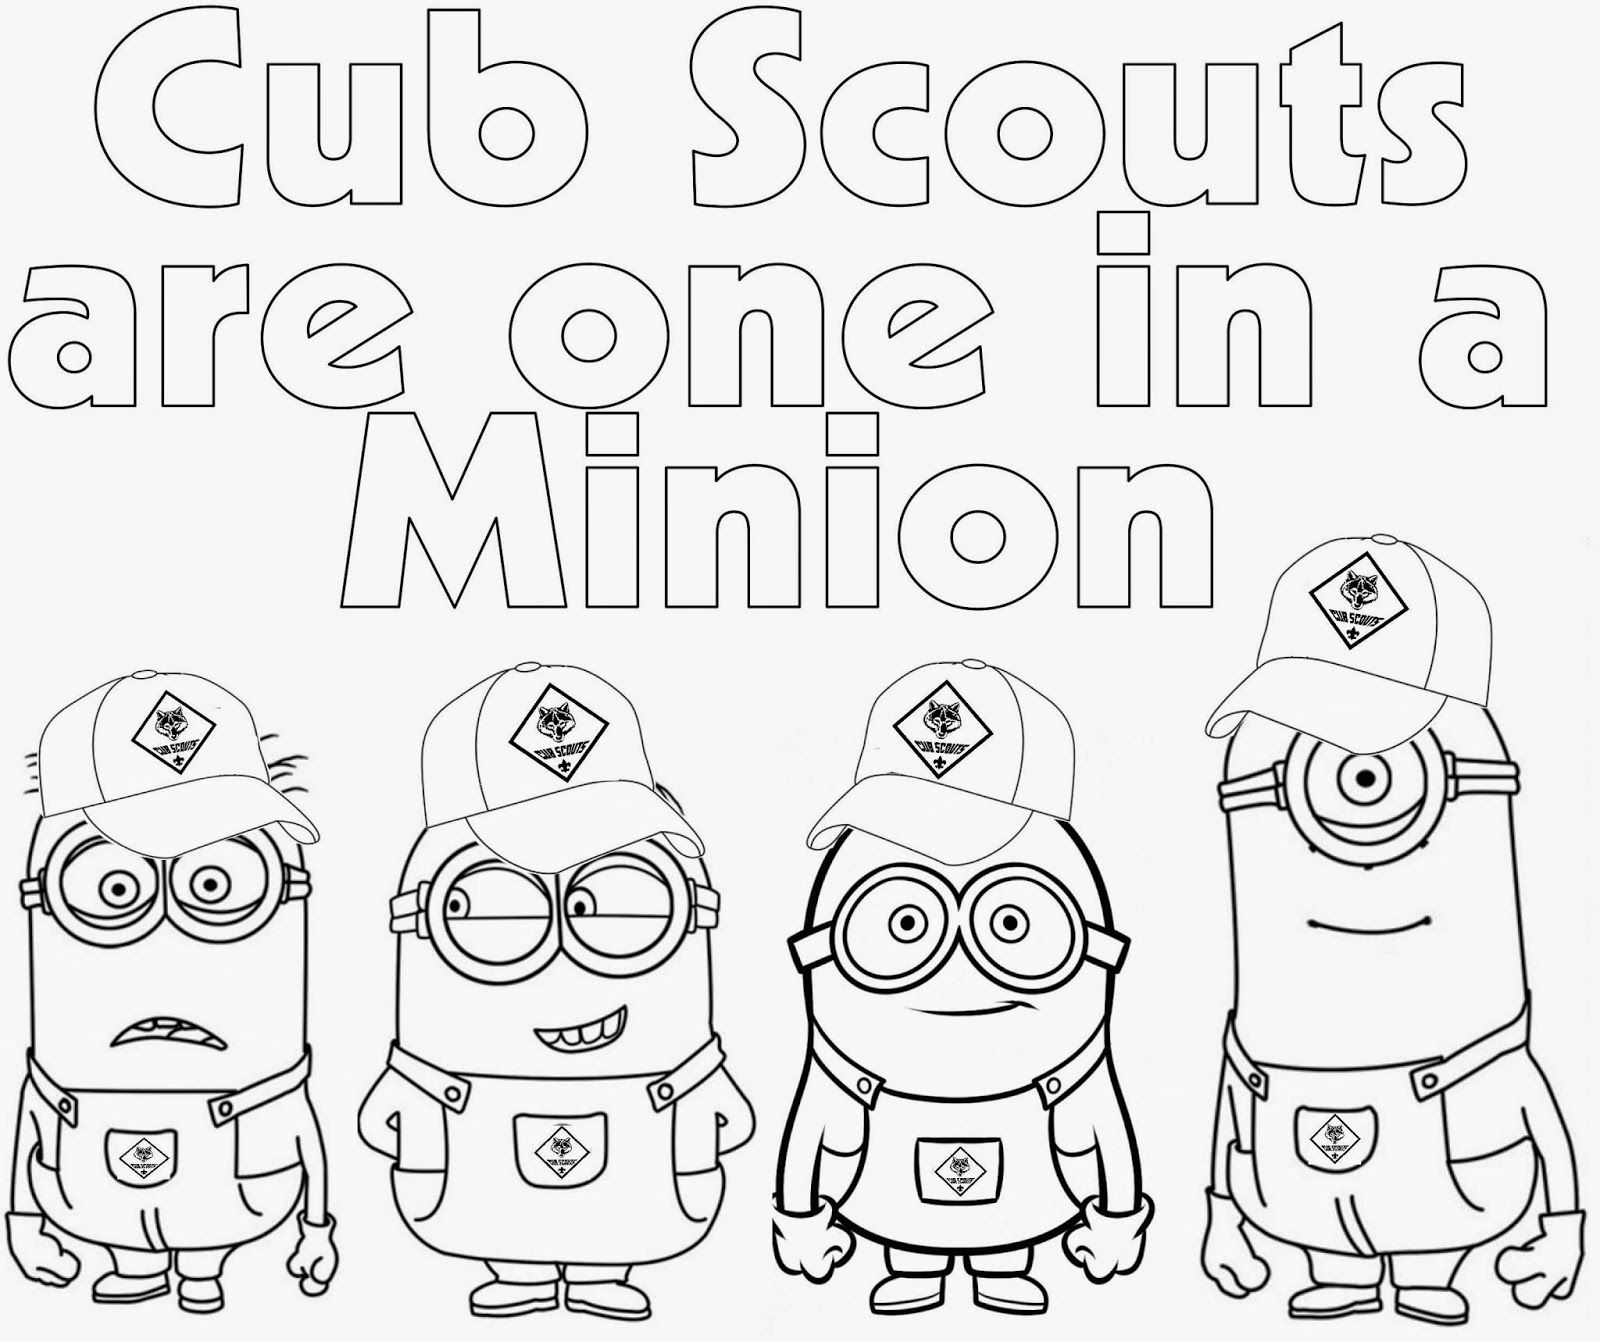 Cub Scout Minions Printable Coloring Page From Despicable Me